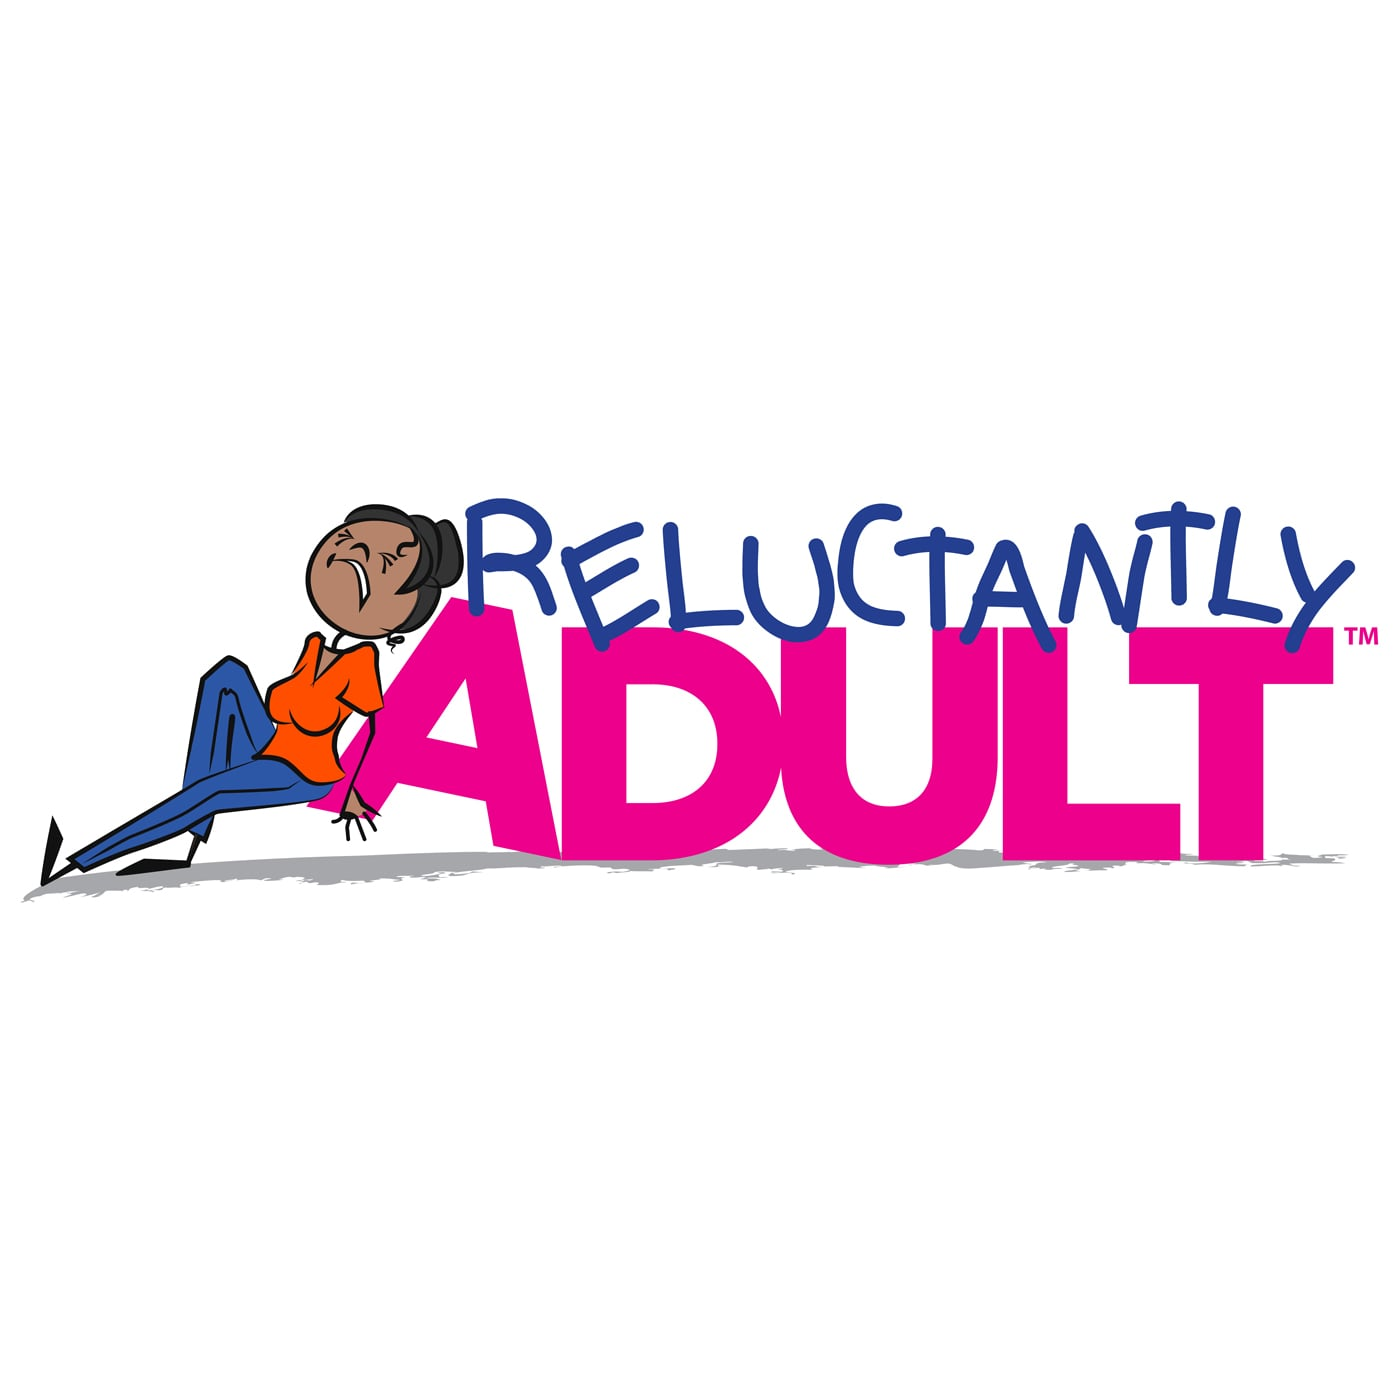 reluctantly adult